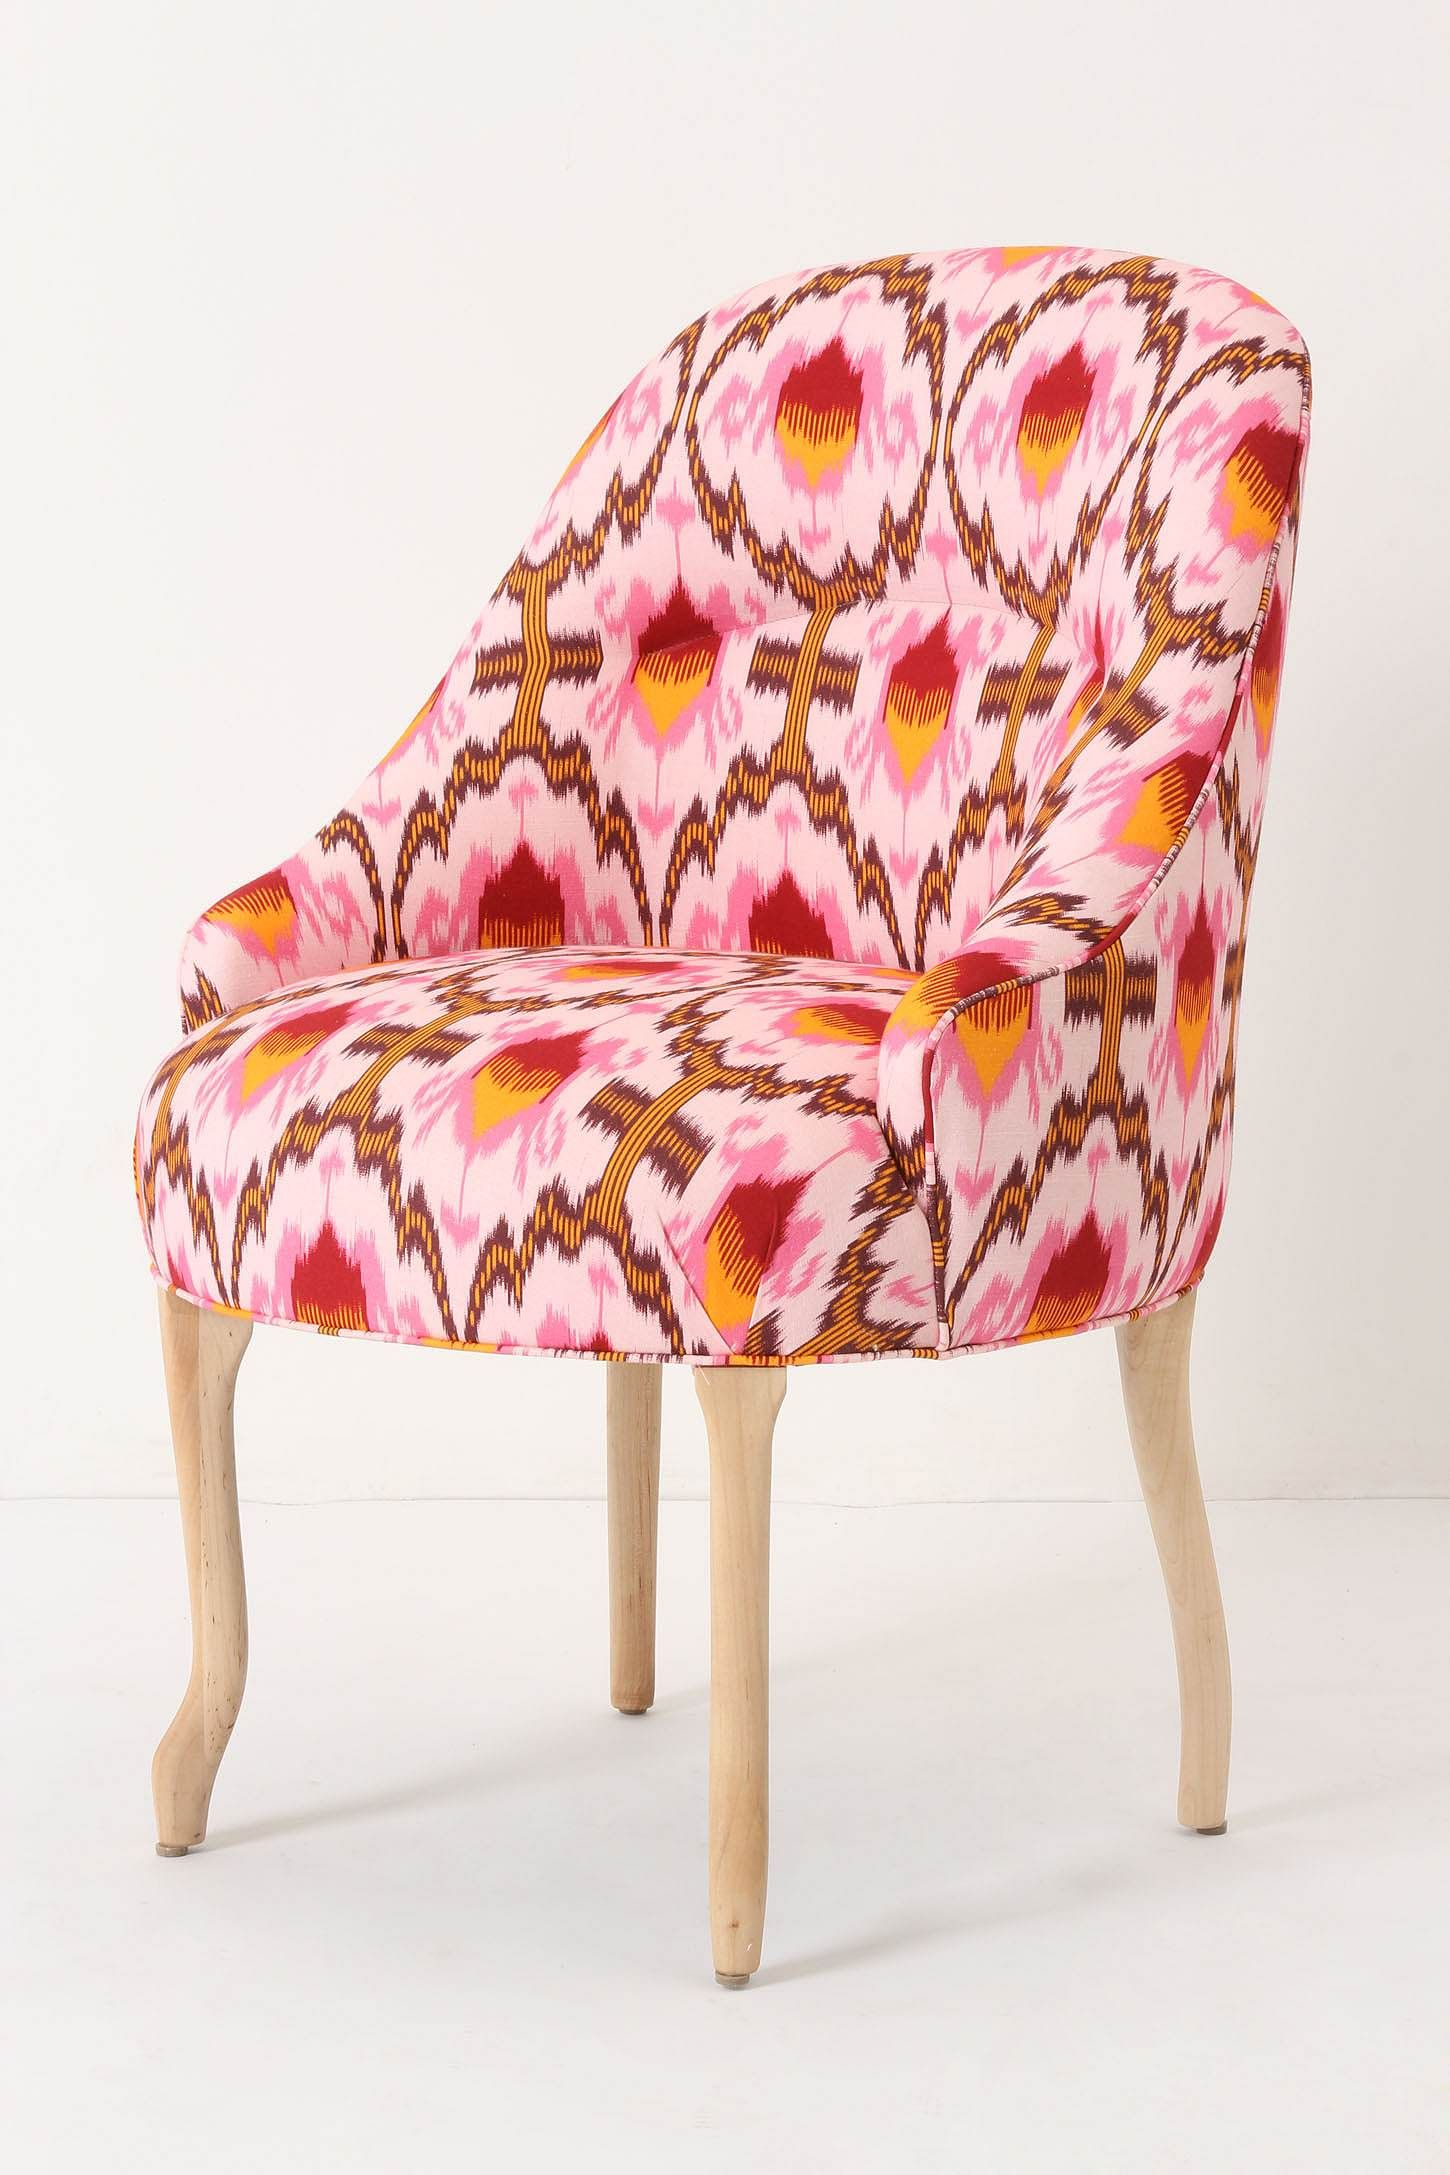 Living Room Decorating Ideas A Pink Ikat Linen Upholstered Accent